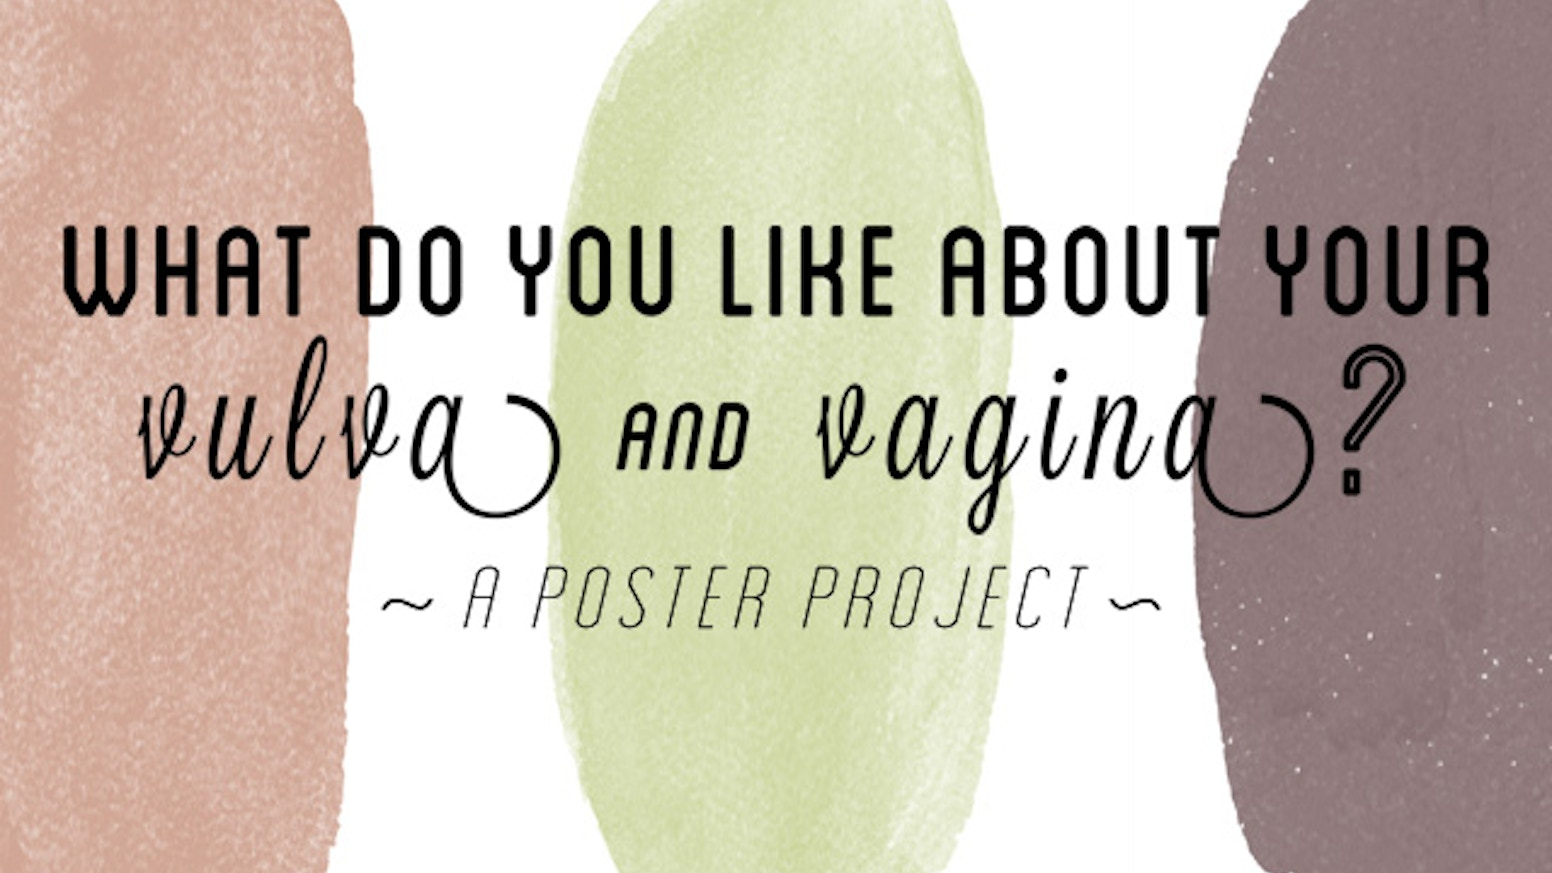 What Do You Like About Your Vulva And Vagina By Dr Debby Herbenick